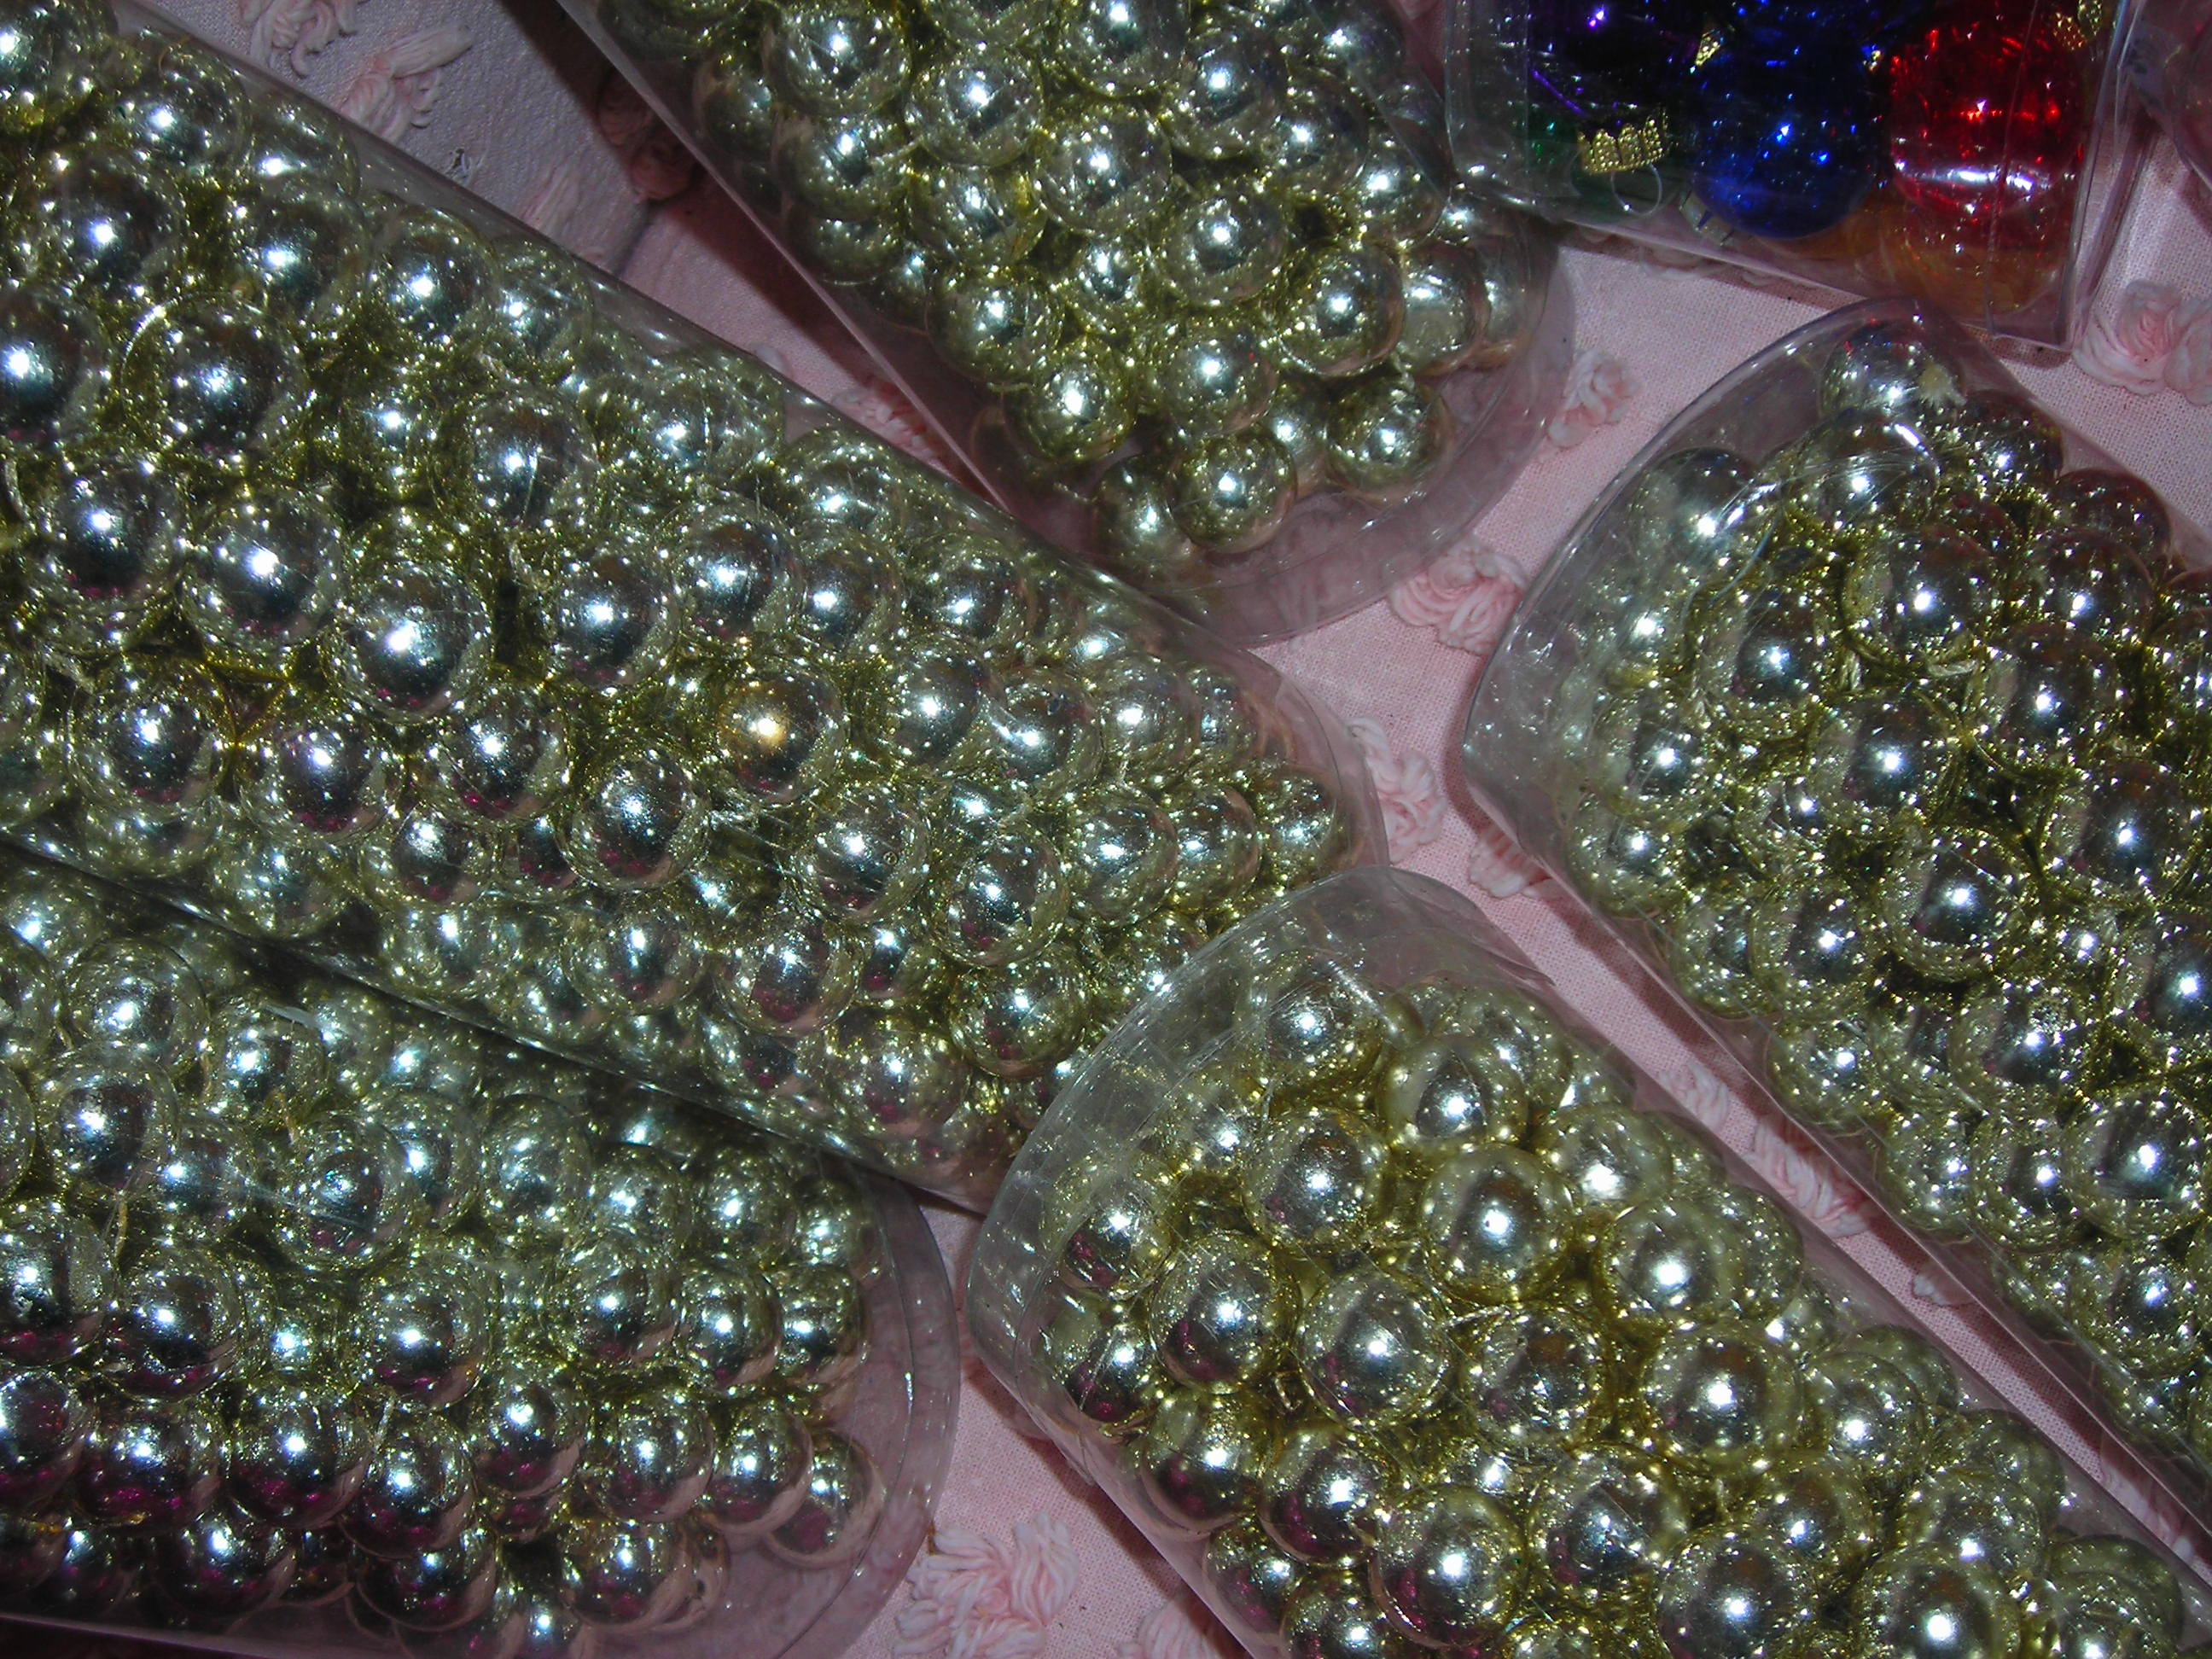 strands and strands of beads, each 15' long! 40 cents each!